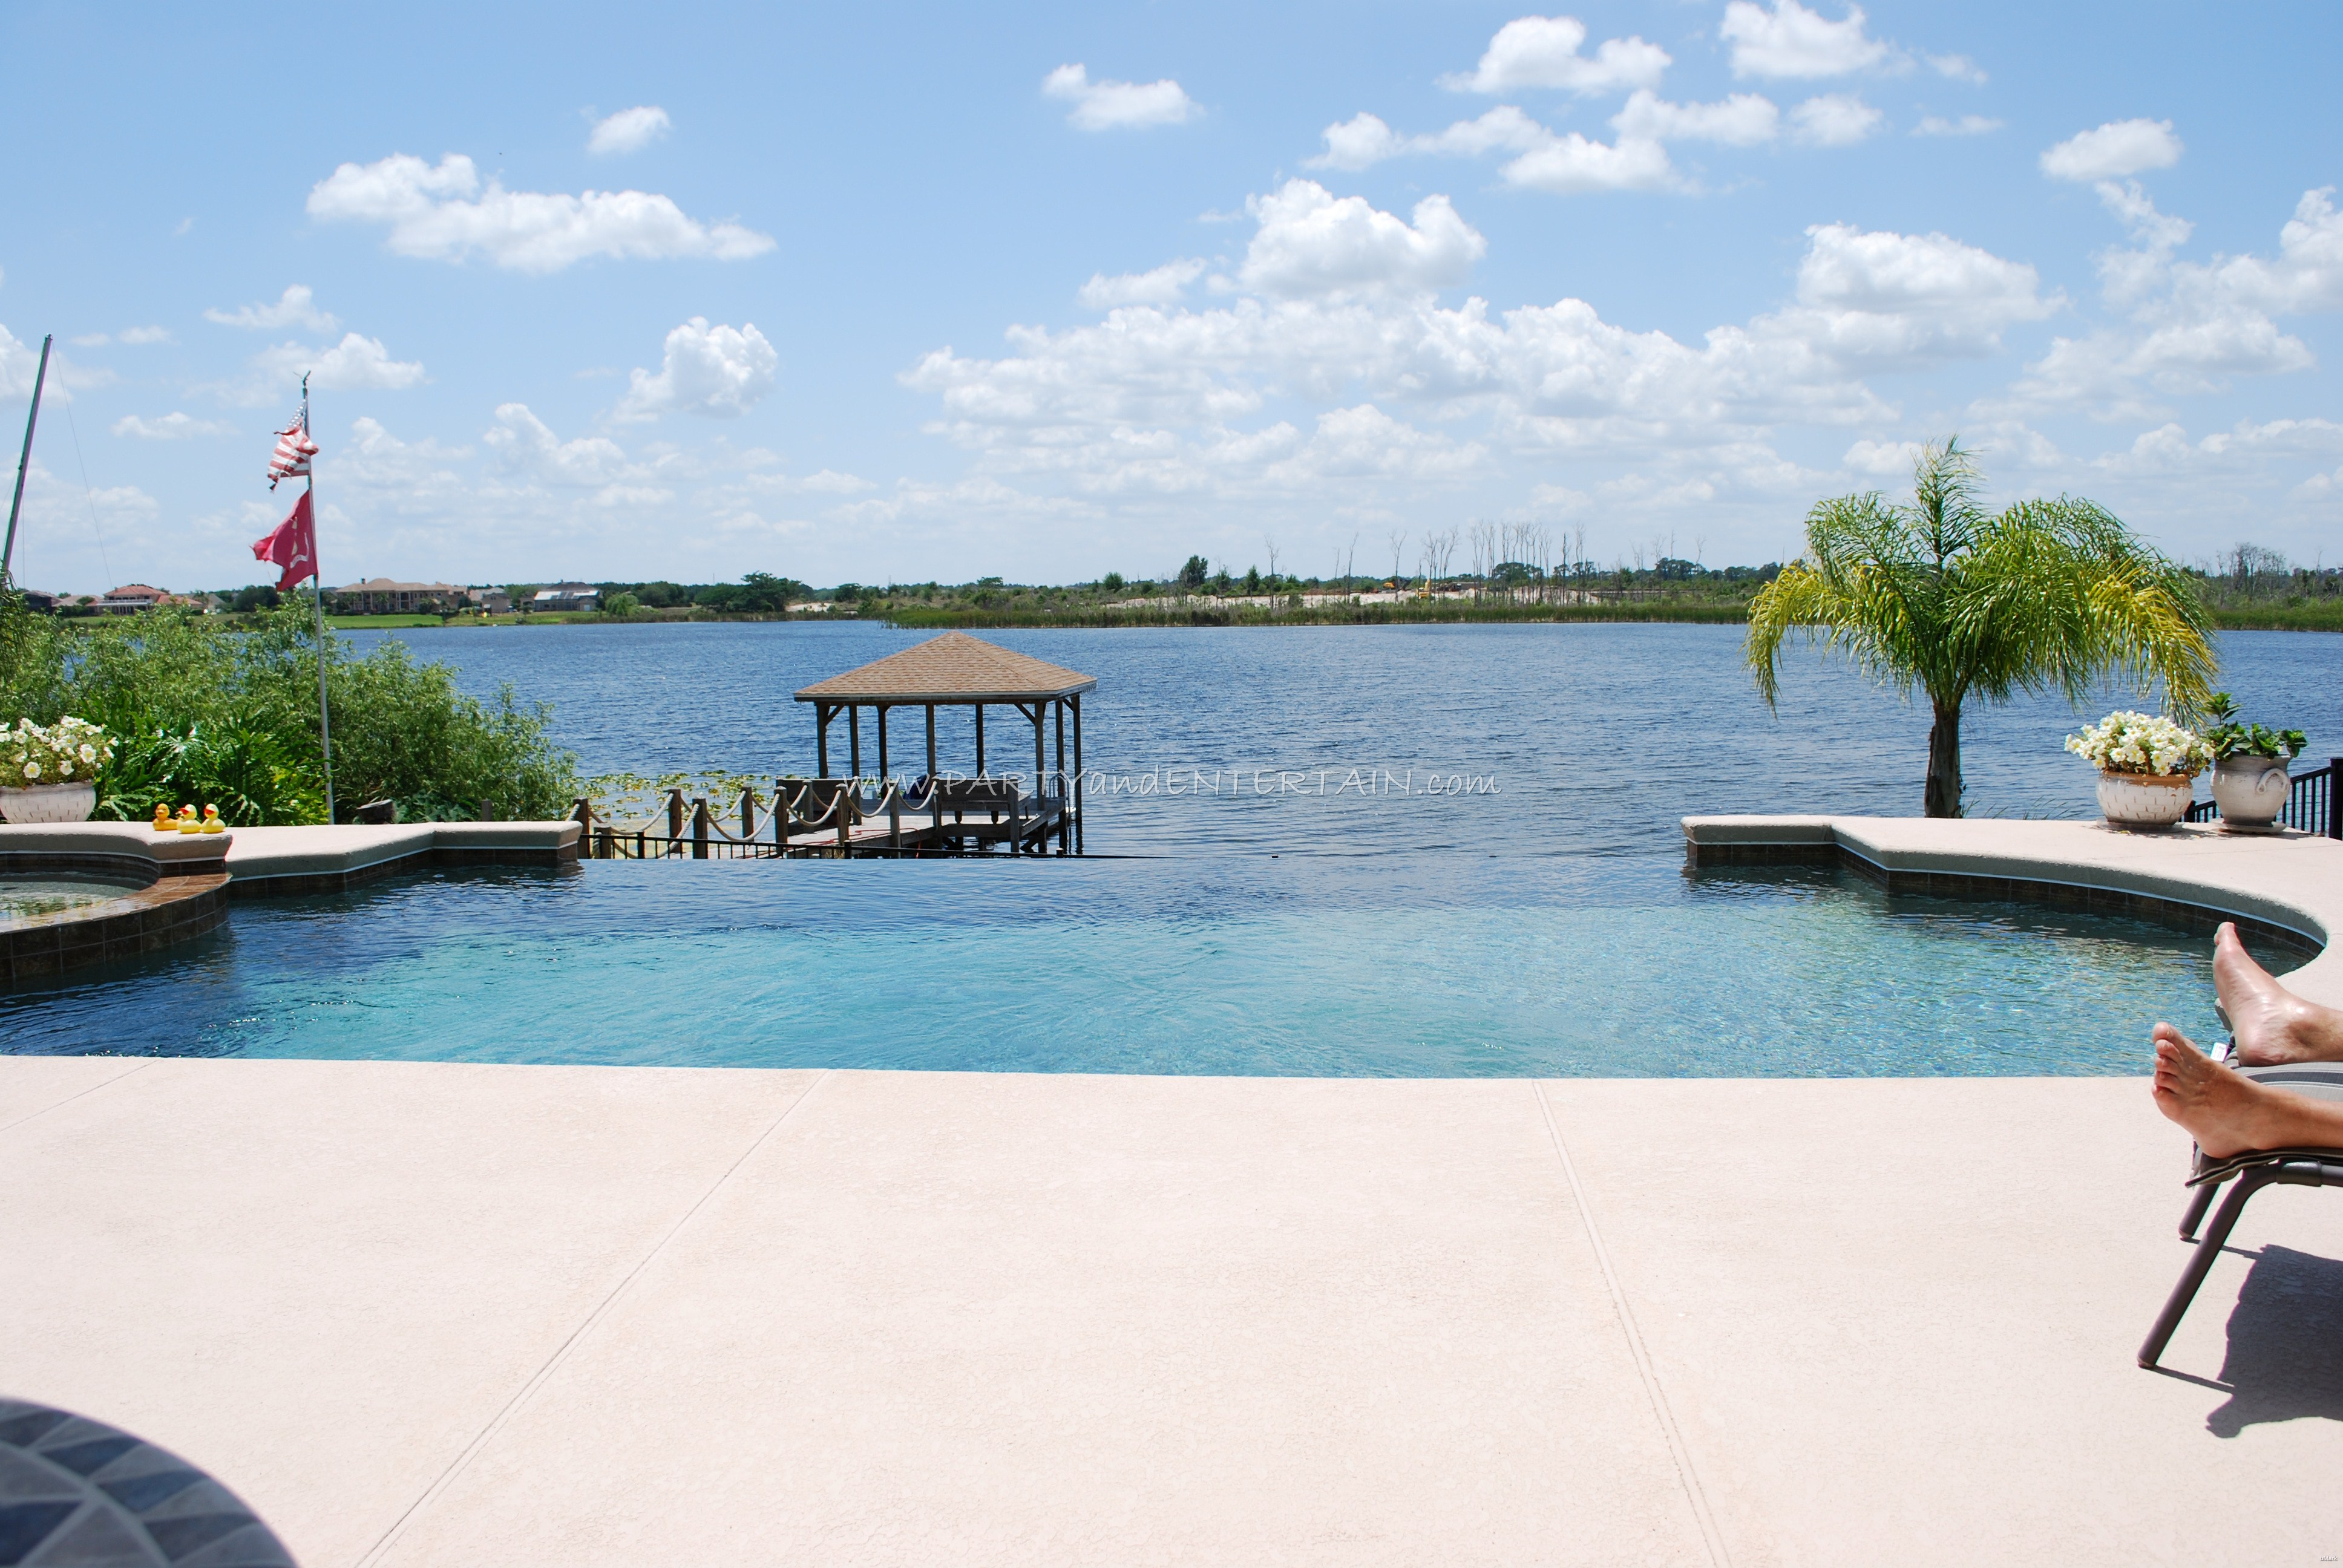 partyandentertain.pool.lake.outdoor